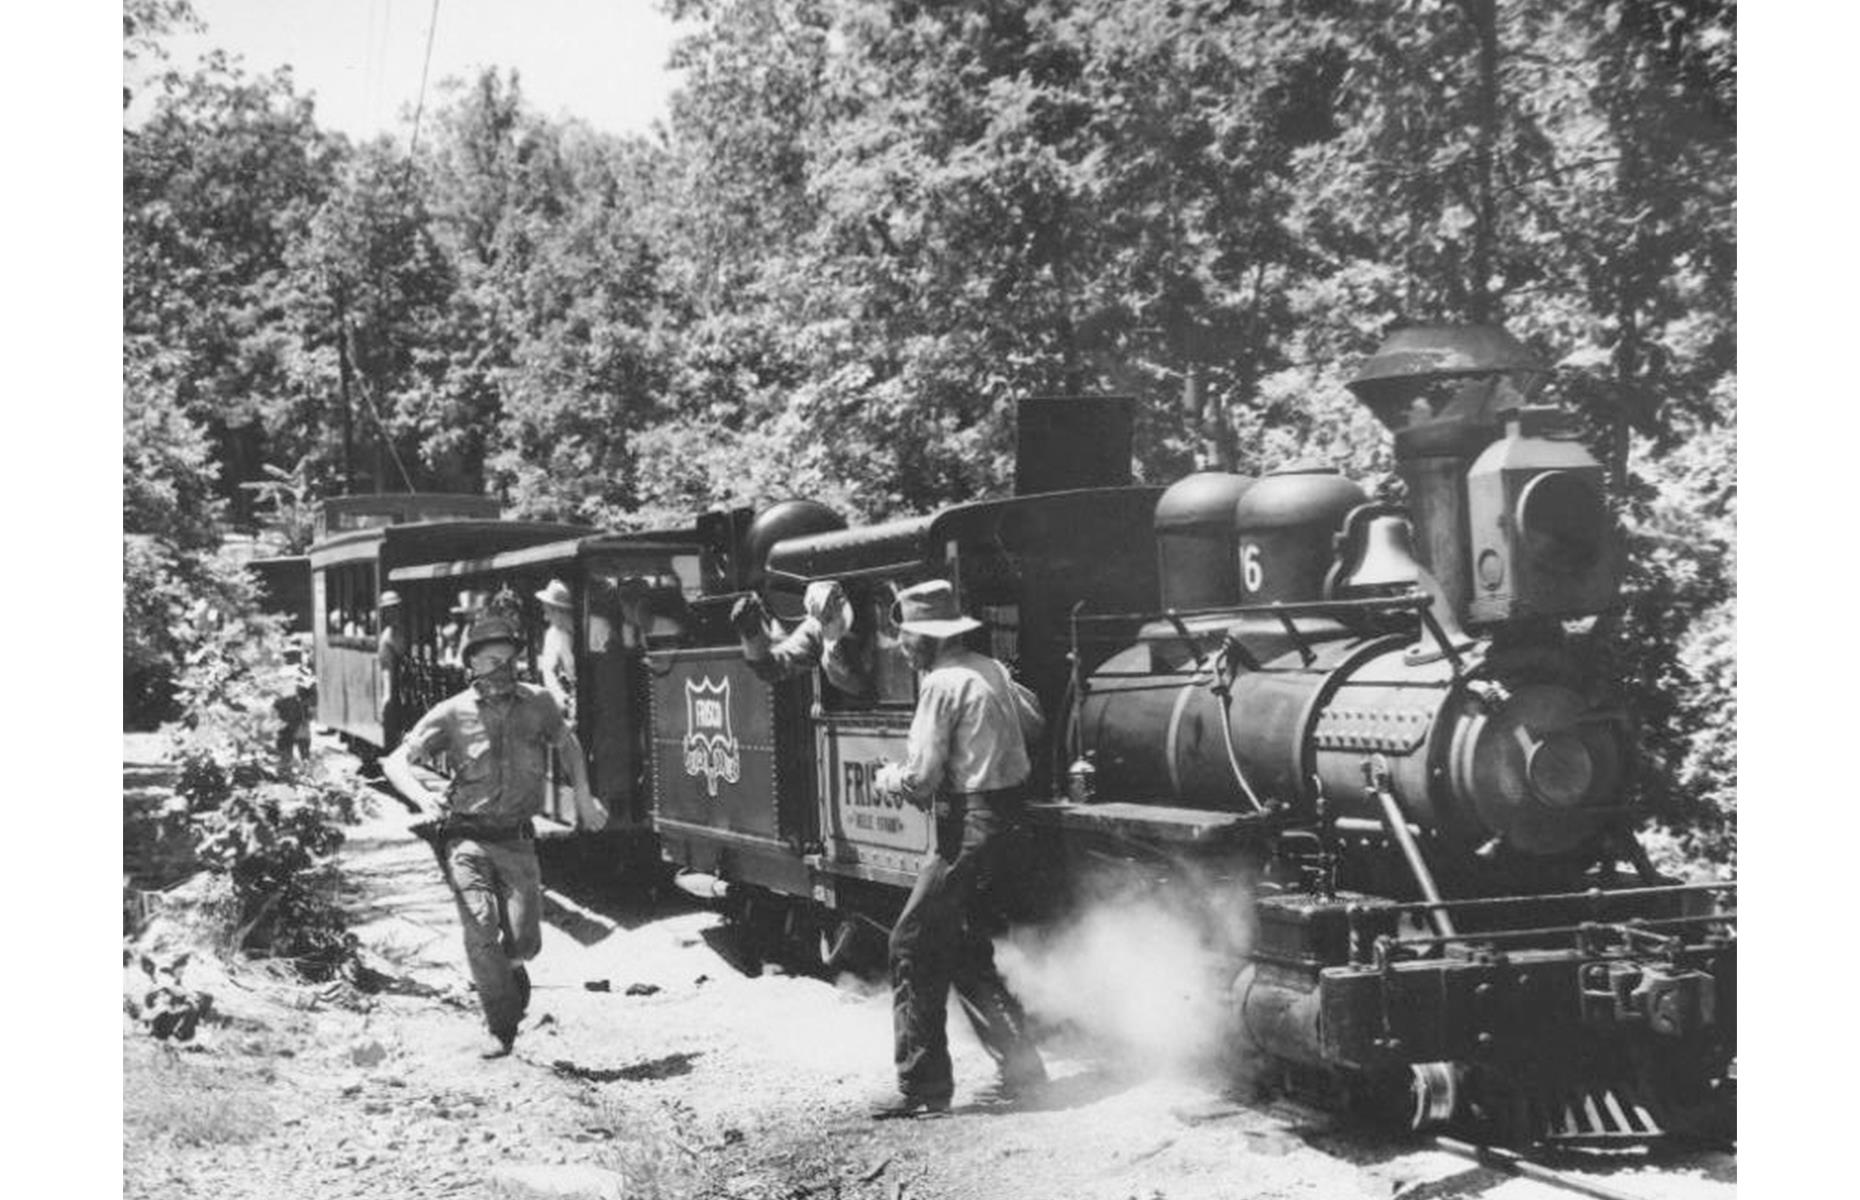 Slide 18 of 35: By the 1960s, one of Silver Dollar City's top attractions had been added: a steam train (pictured) that chugs through the leafy Ozarks countryside. But beware: along the way passengers would be (and still are) held up by train robbers that emerged from the woods ready to loot and plunder.